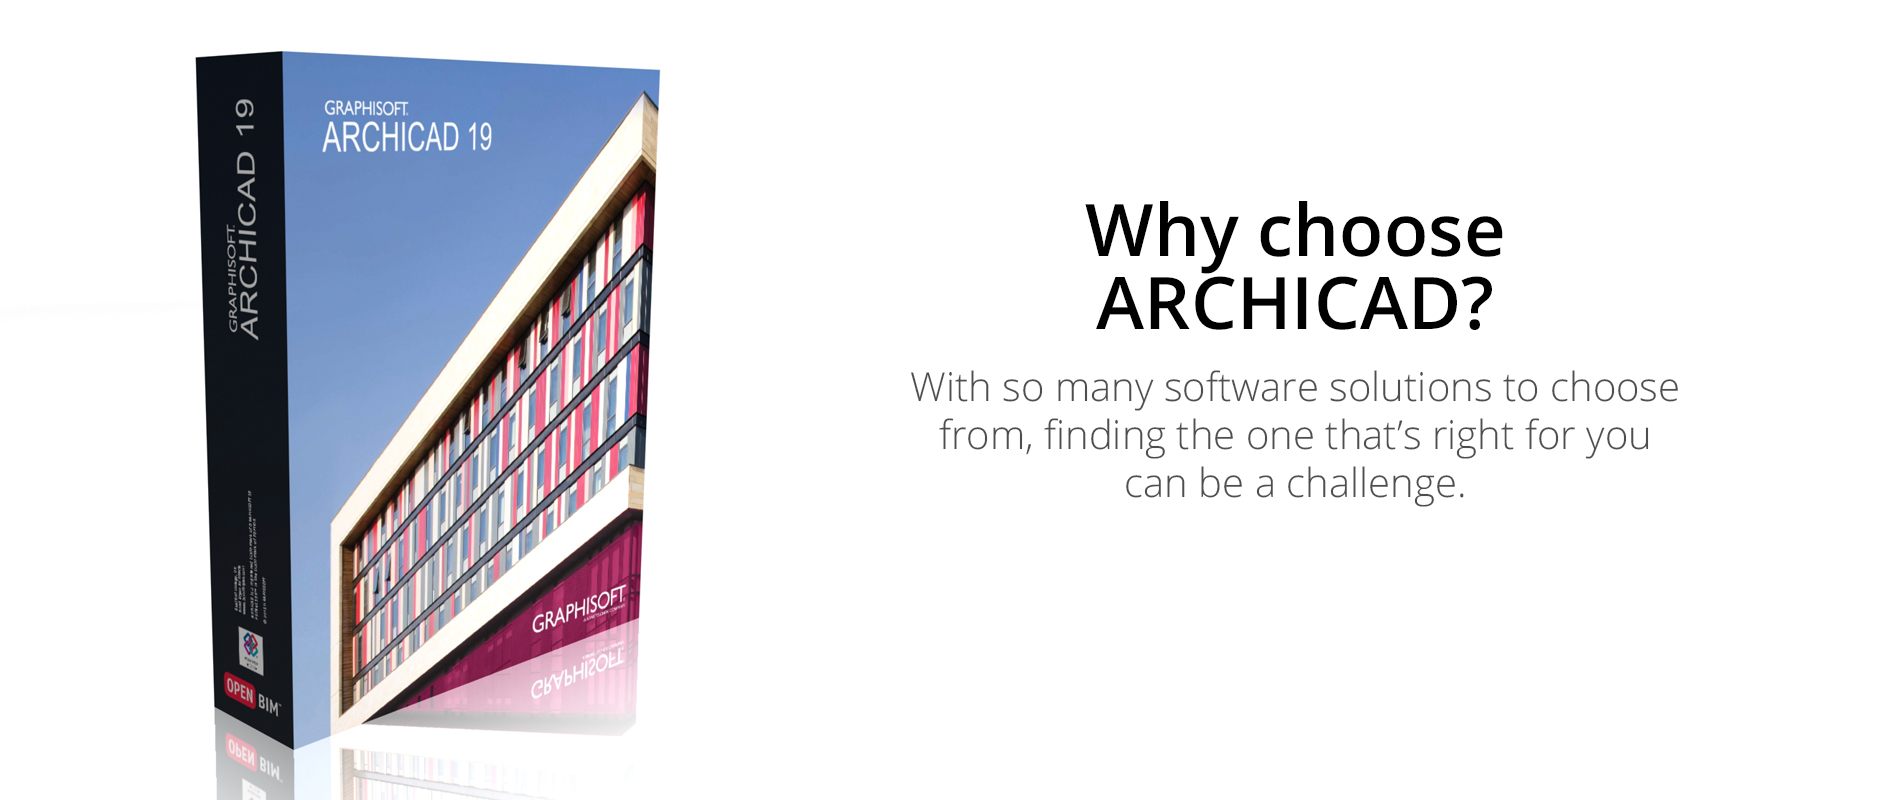 Why choose ARCHICAD?